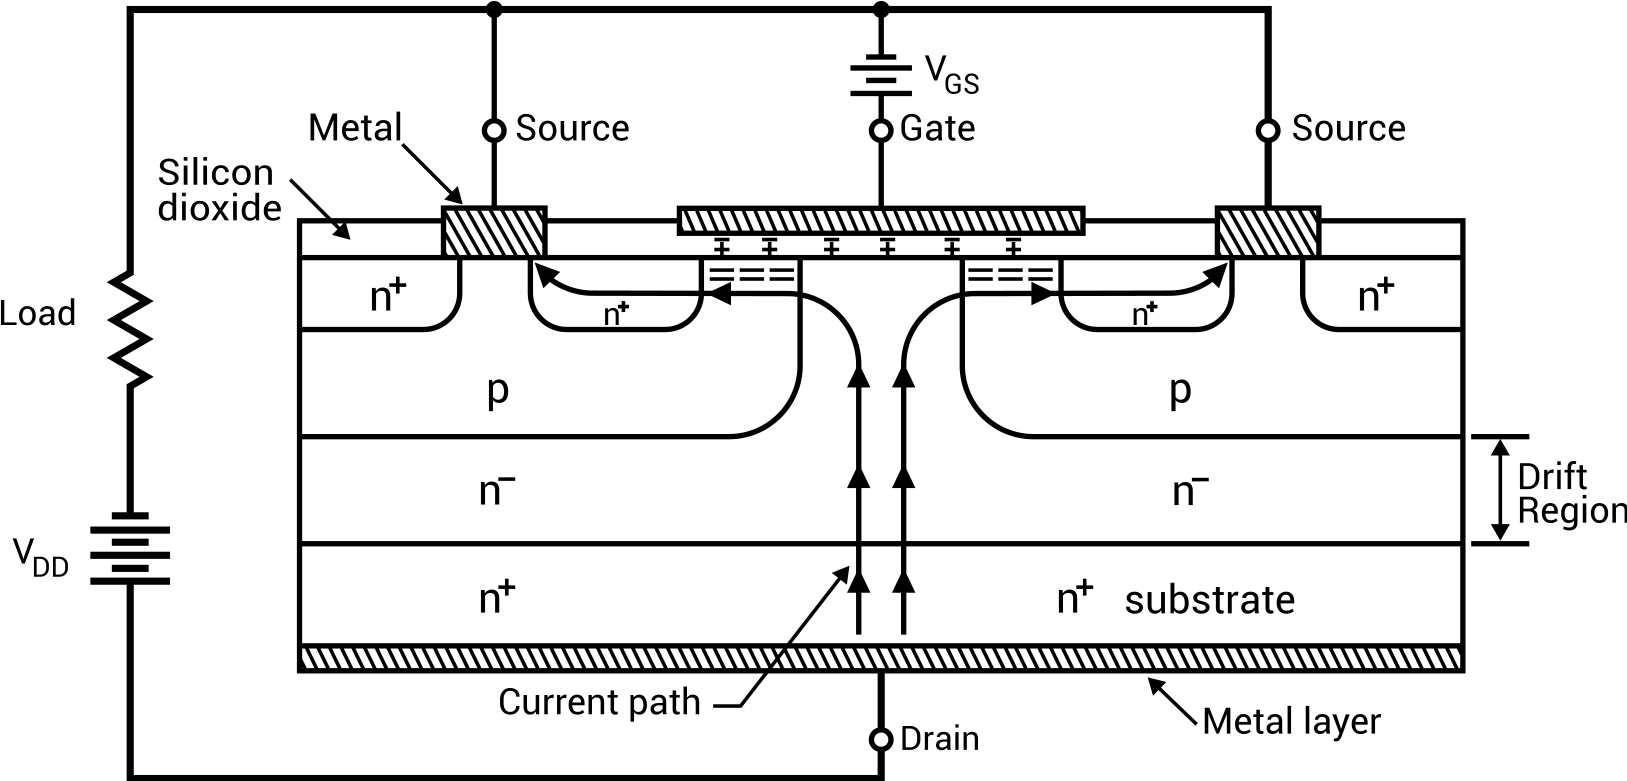 hight resolution of power mosfet structural view with connections